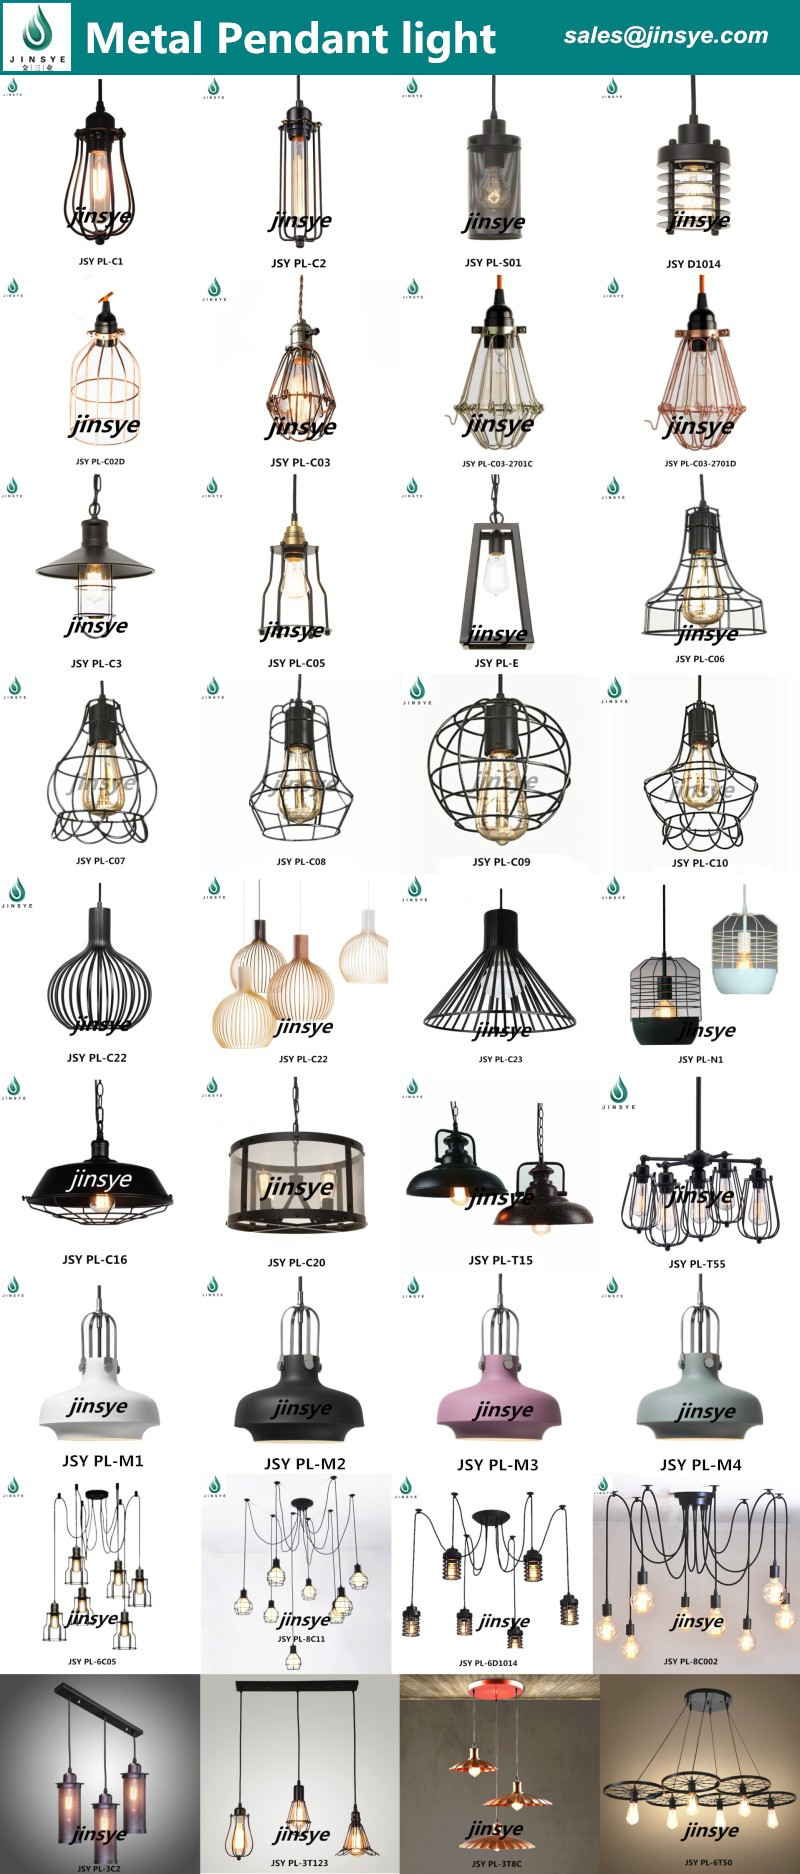 hanging spider cage pendant light.